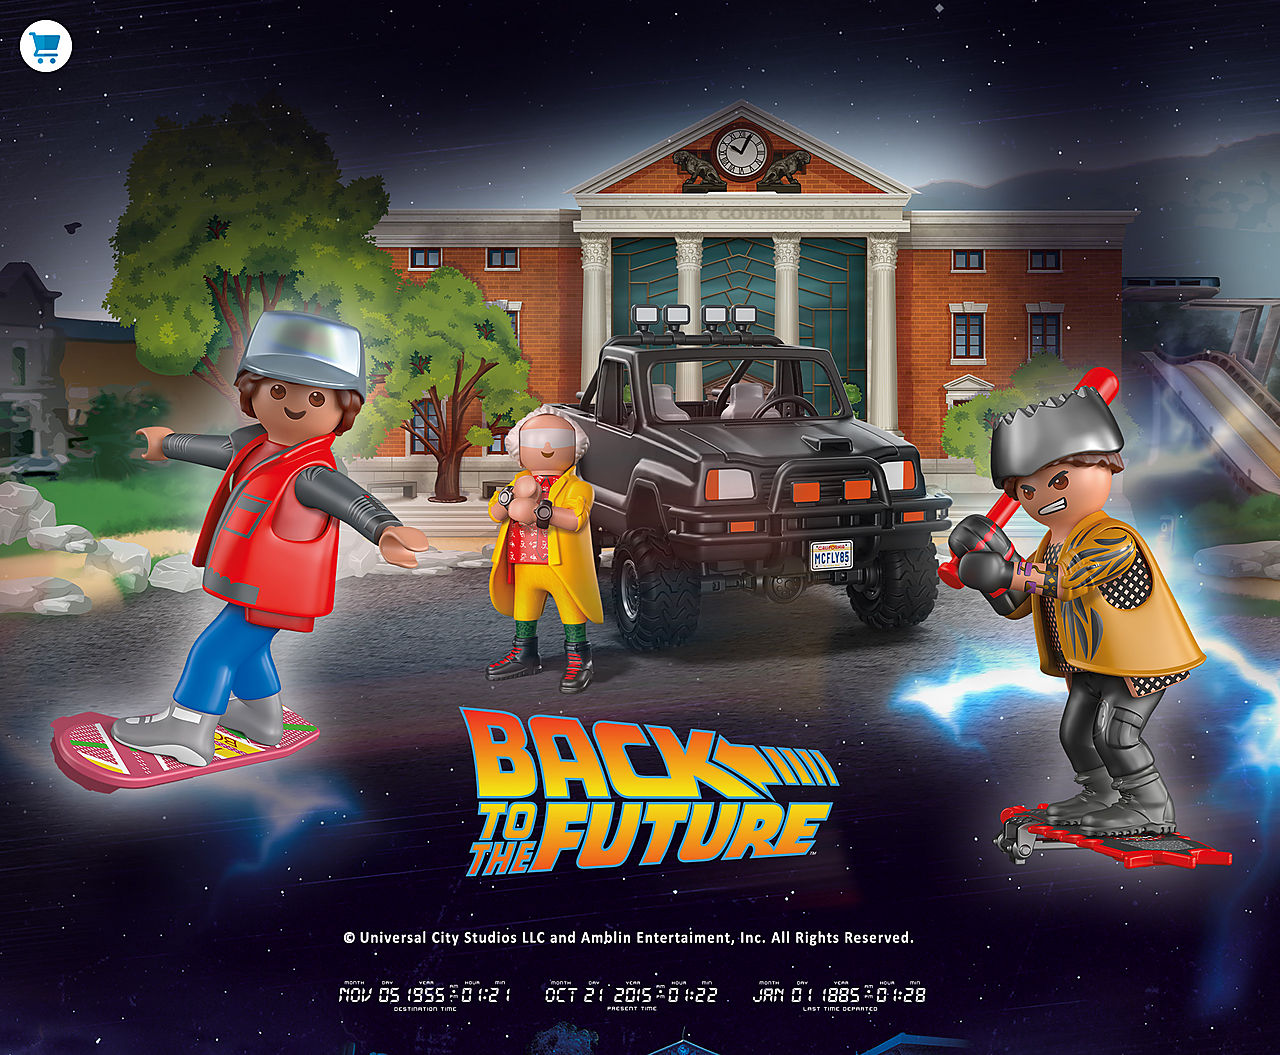 Discover the PLAYMOBIL Back to the Future playsets with 70633 Back to the Future Marty's Pick-up Truck and 70634 Back to the Future Part II Hoverboard Chase